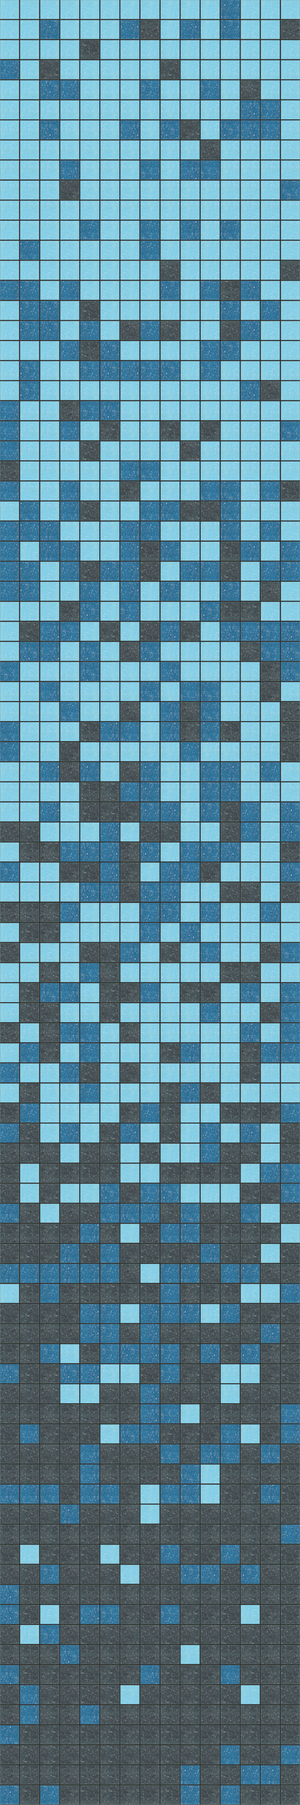 Brio Glass Mosaic Tile |  Brio Gradient Blend Blues